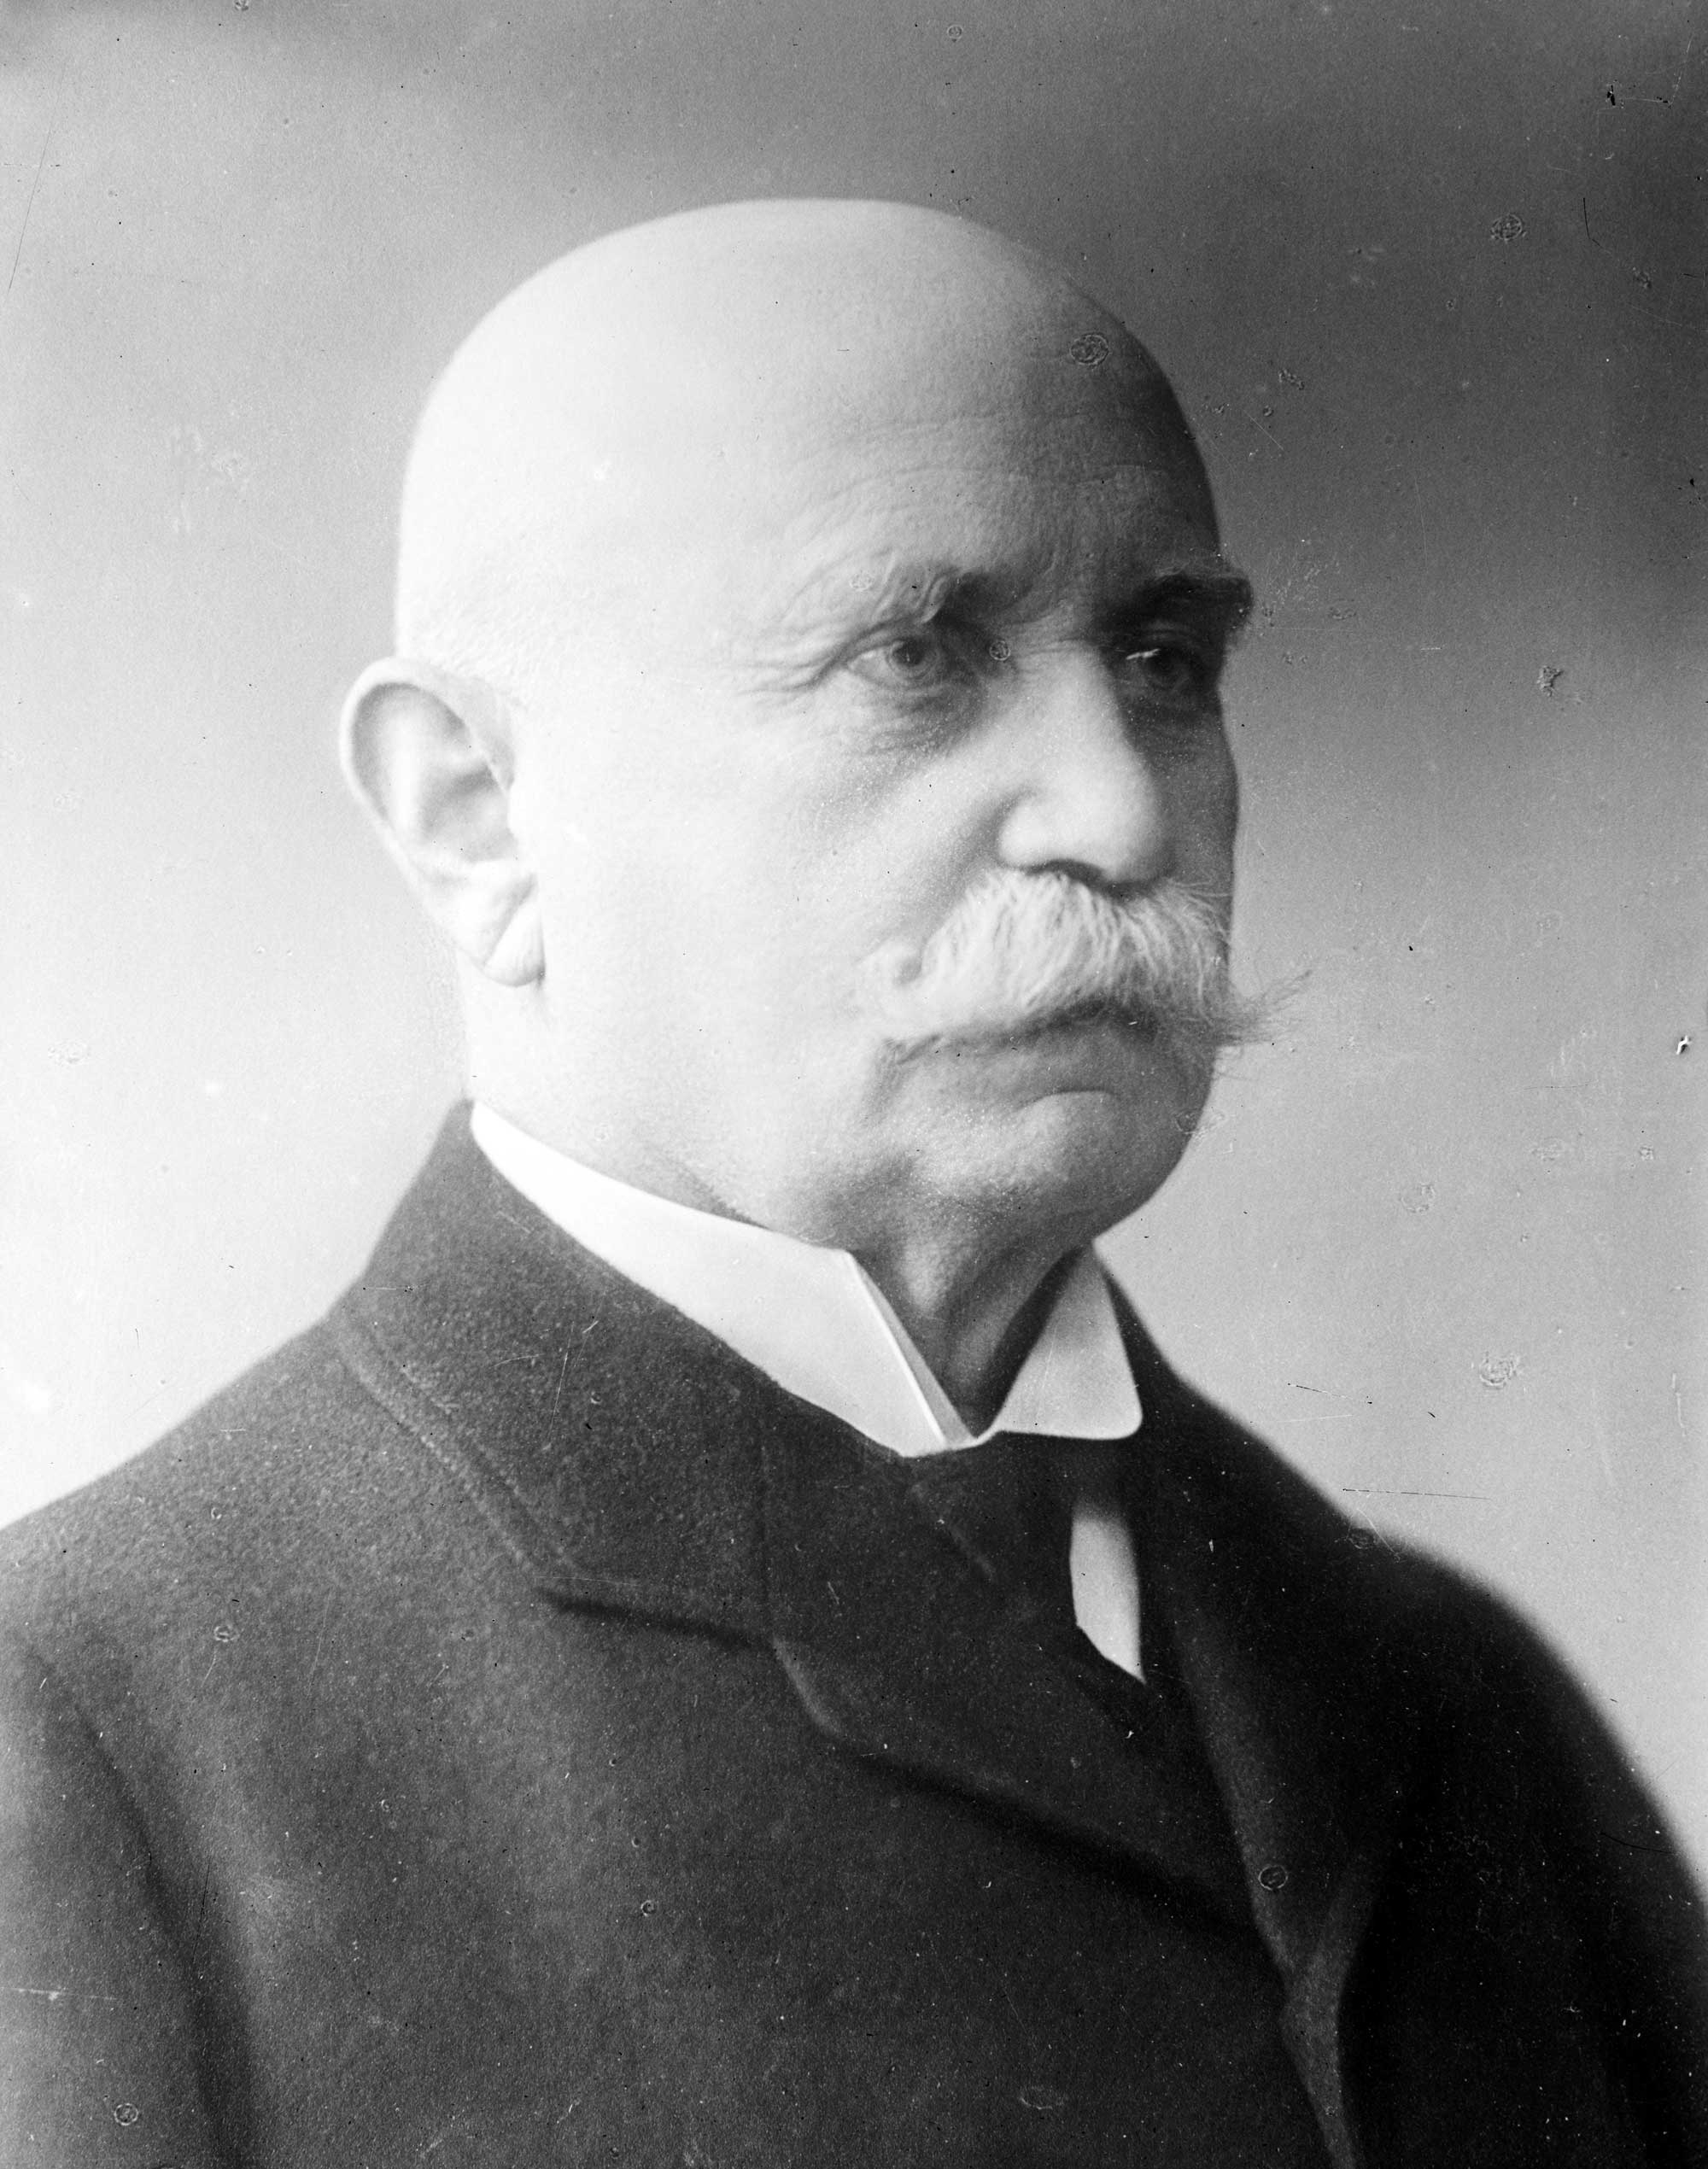 Count Ferdinand von Zeppelin Biography (1838-1917)